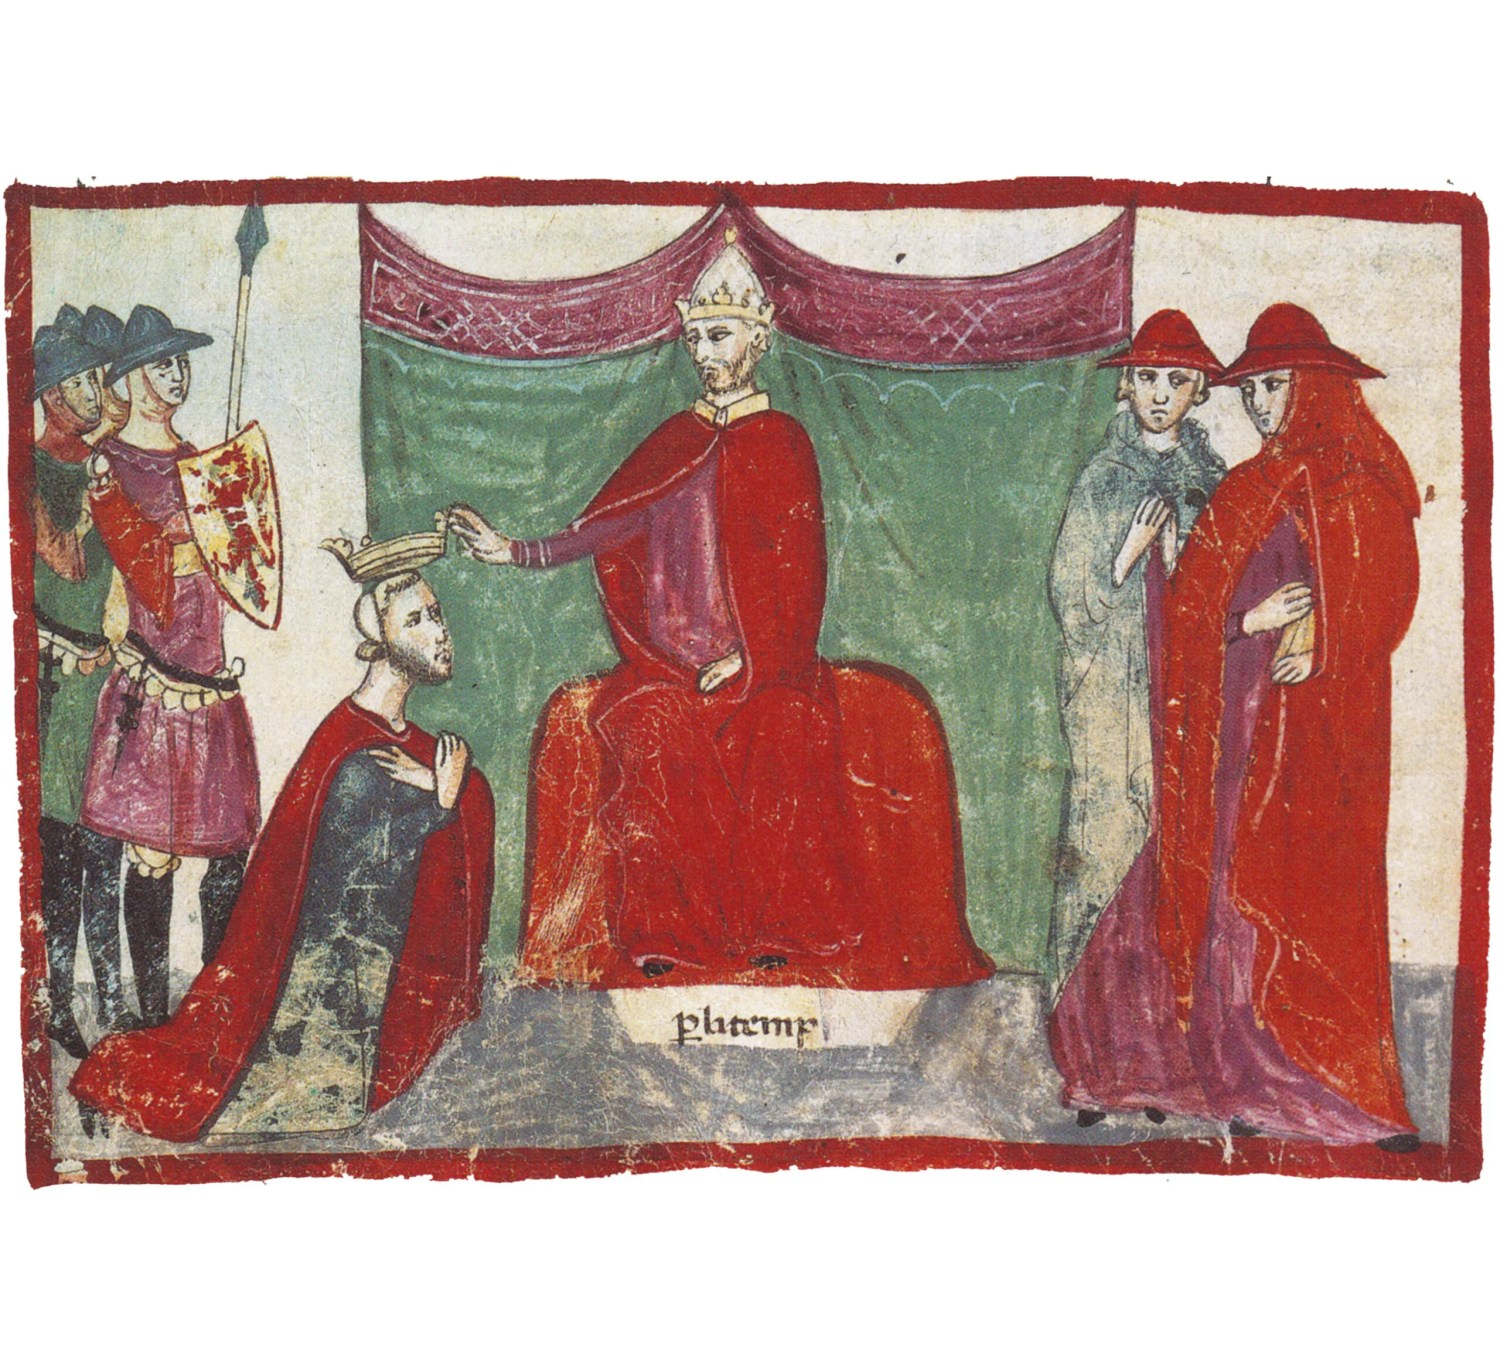 ABOVE This 14th-century fresco shows the Pope making the Norman warlord Robert Guiscard a duke. The Norman conquest of southern Italy and Sicily was no less dramatic a turnaround than their more or less contemporary conquest of England.